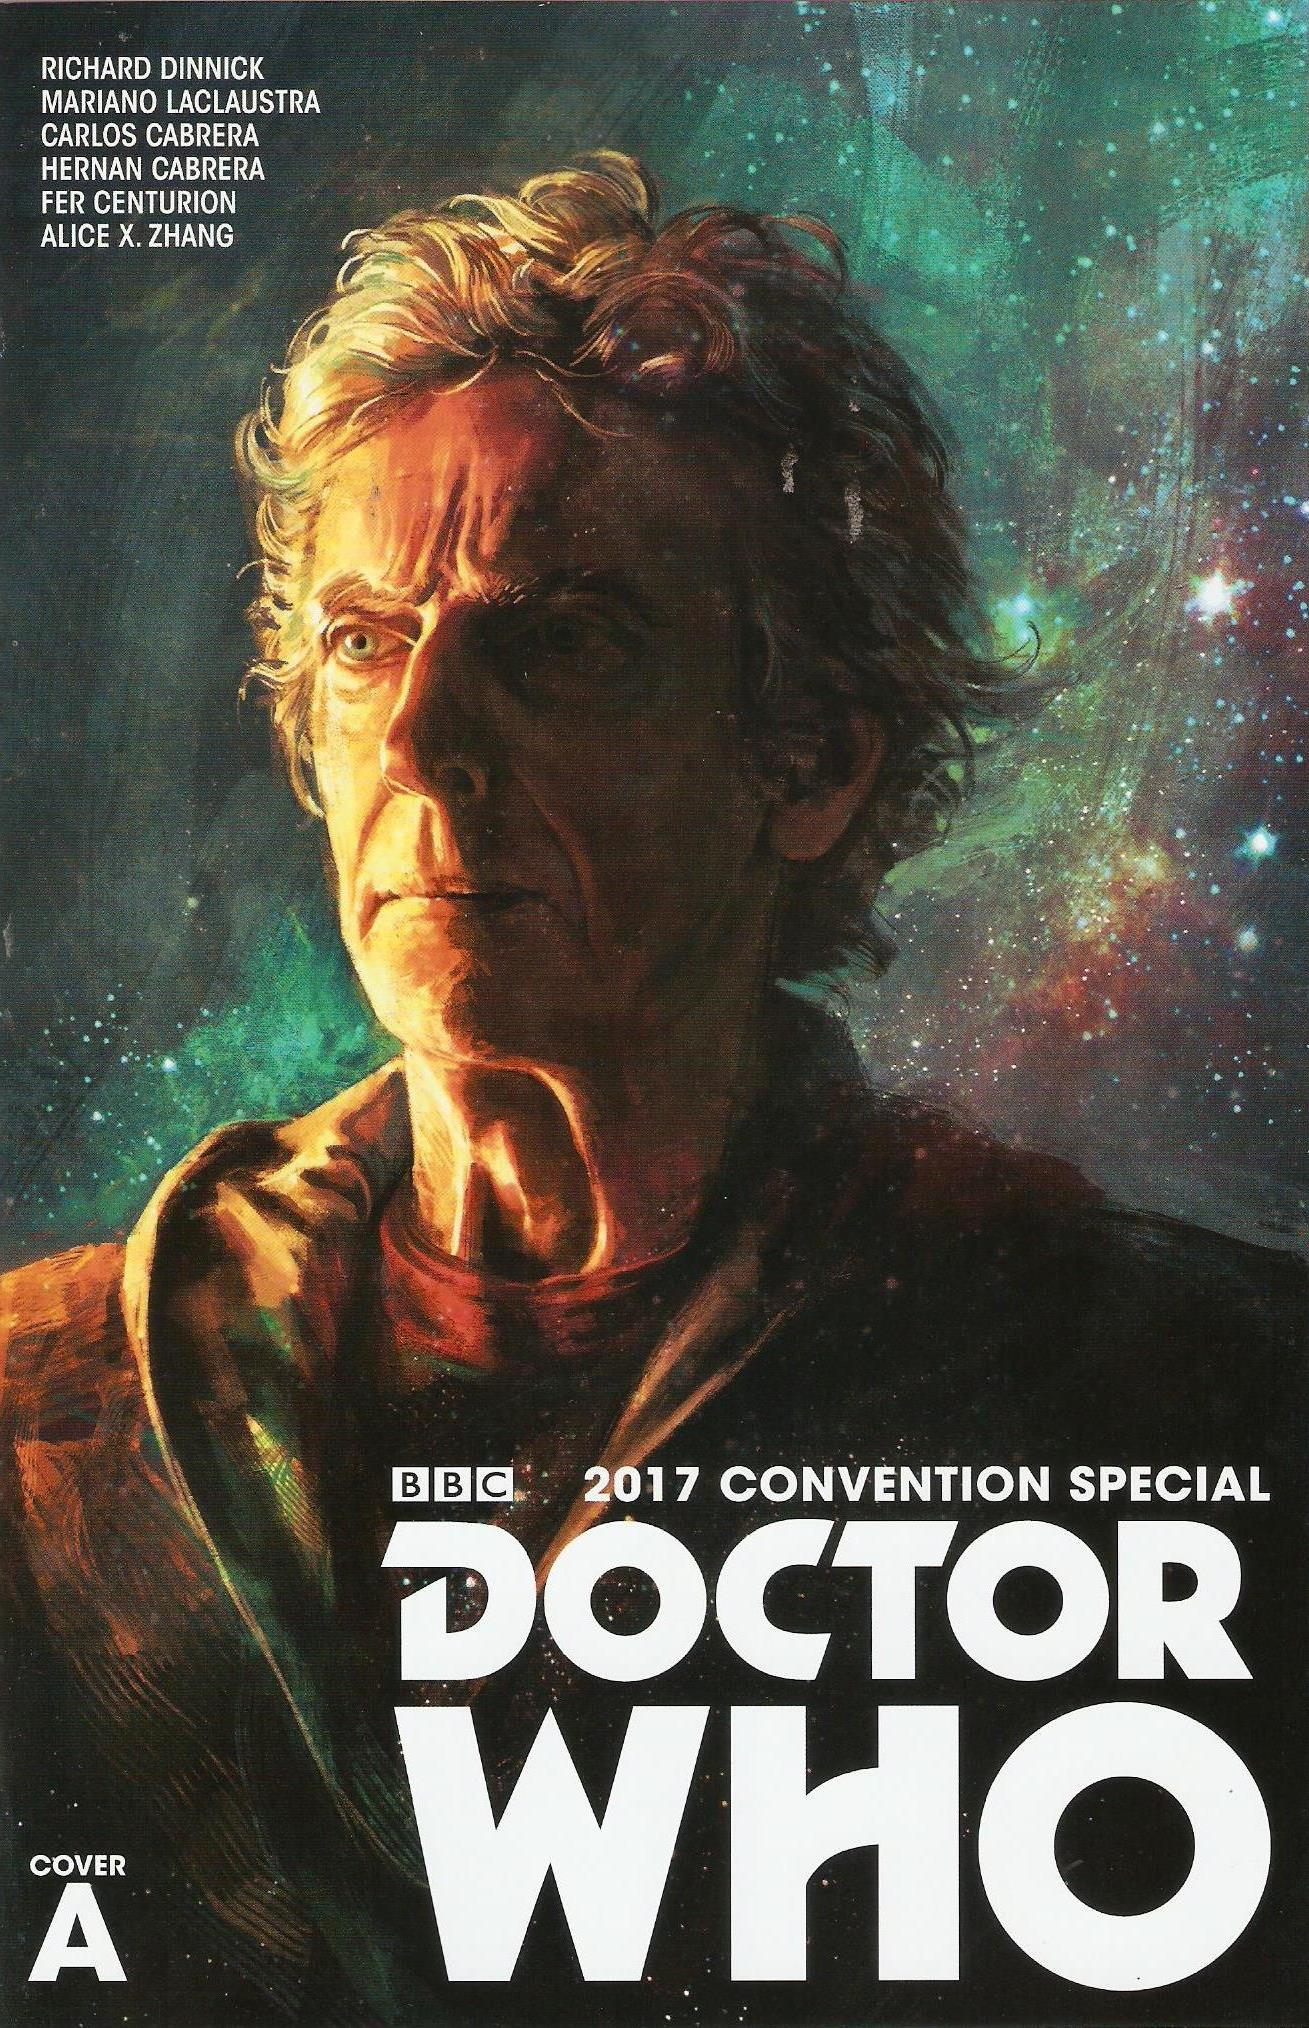 Doctor who 2017 convention special cover A